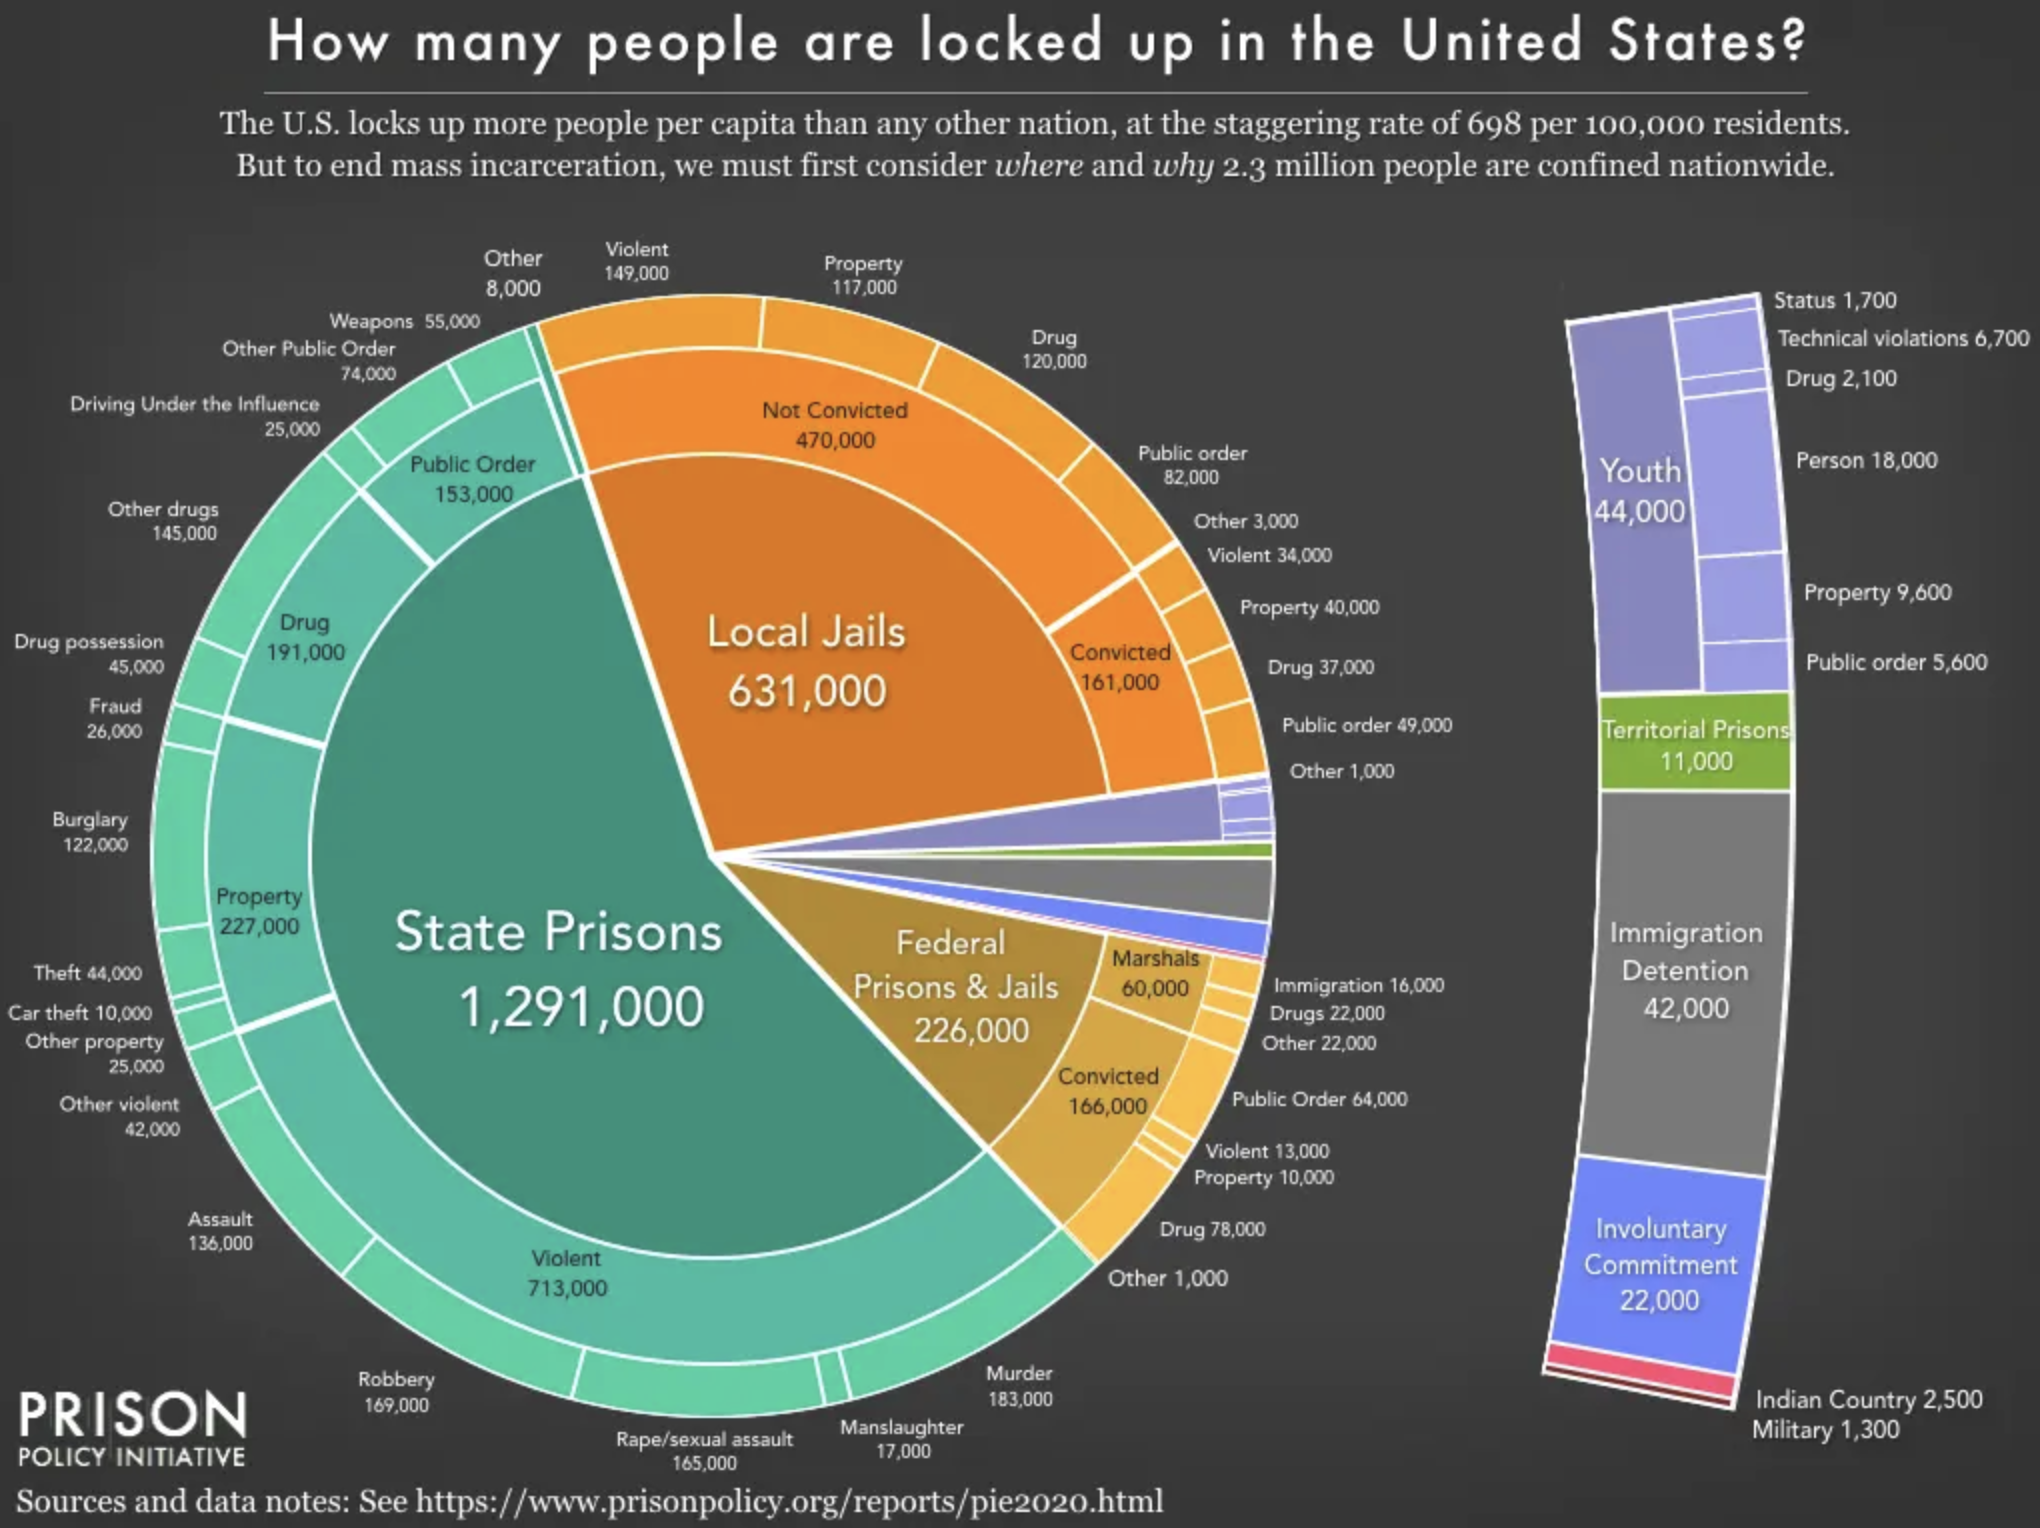 How many people are locked in the United States